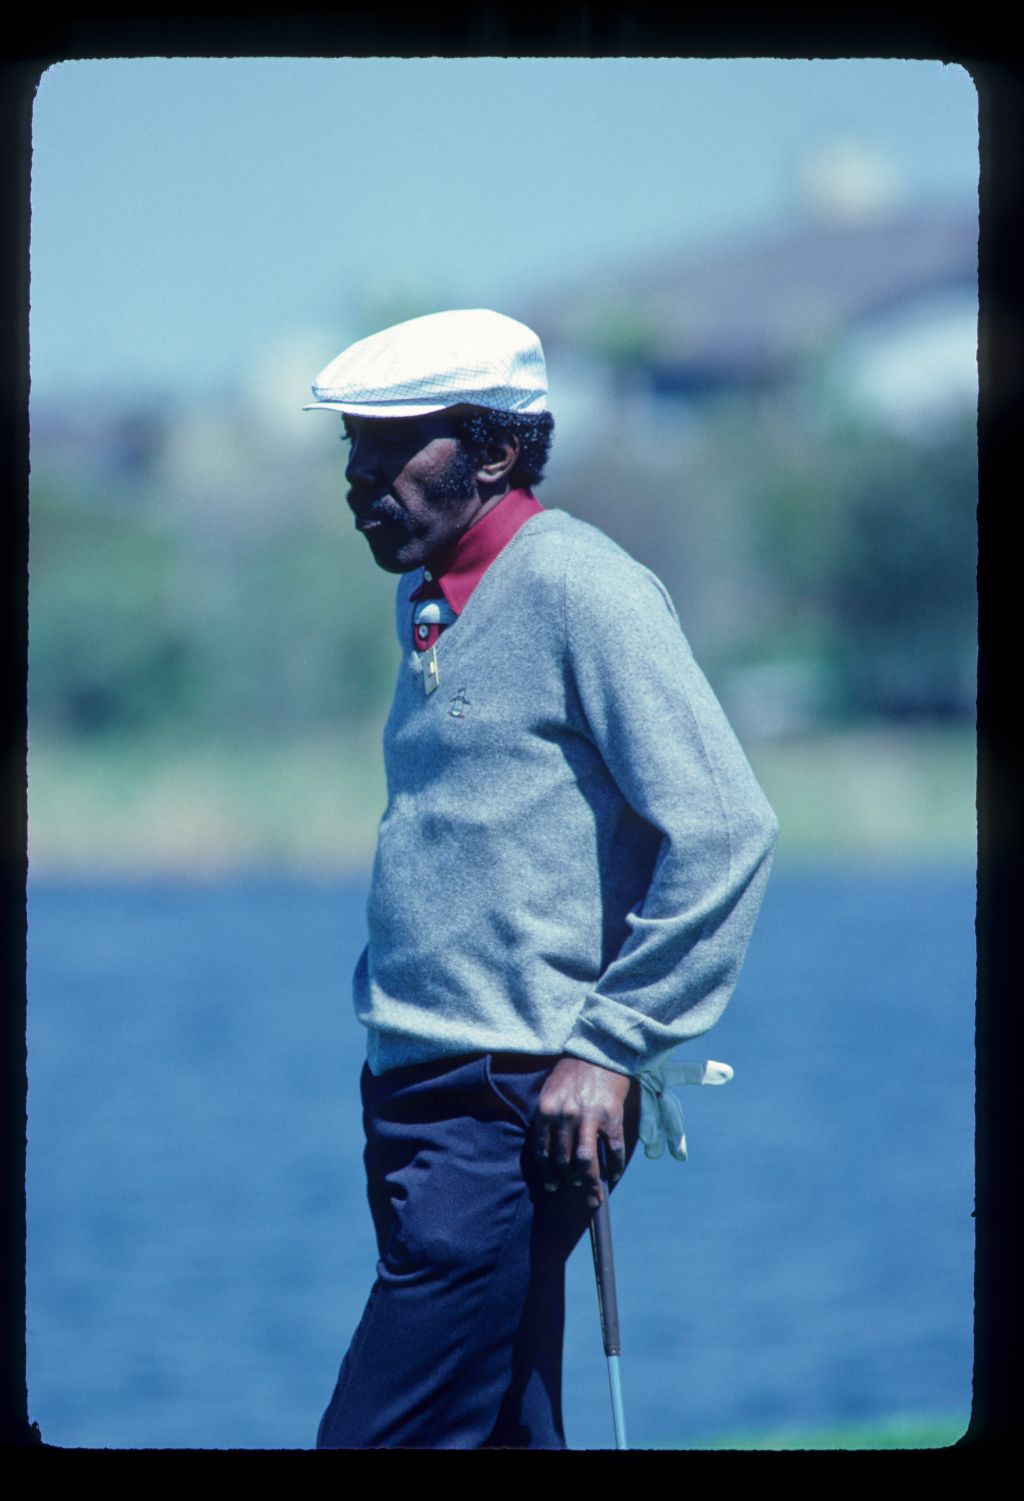 Calvin Peete leaning on his putter during the 1981 TPC